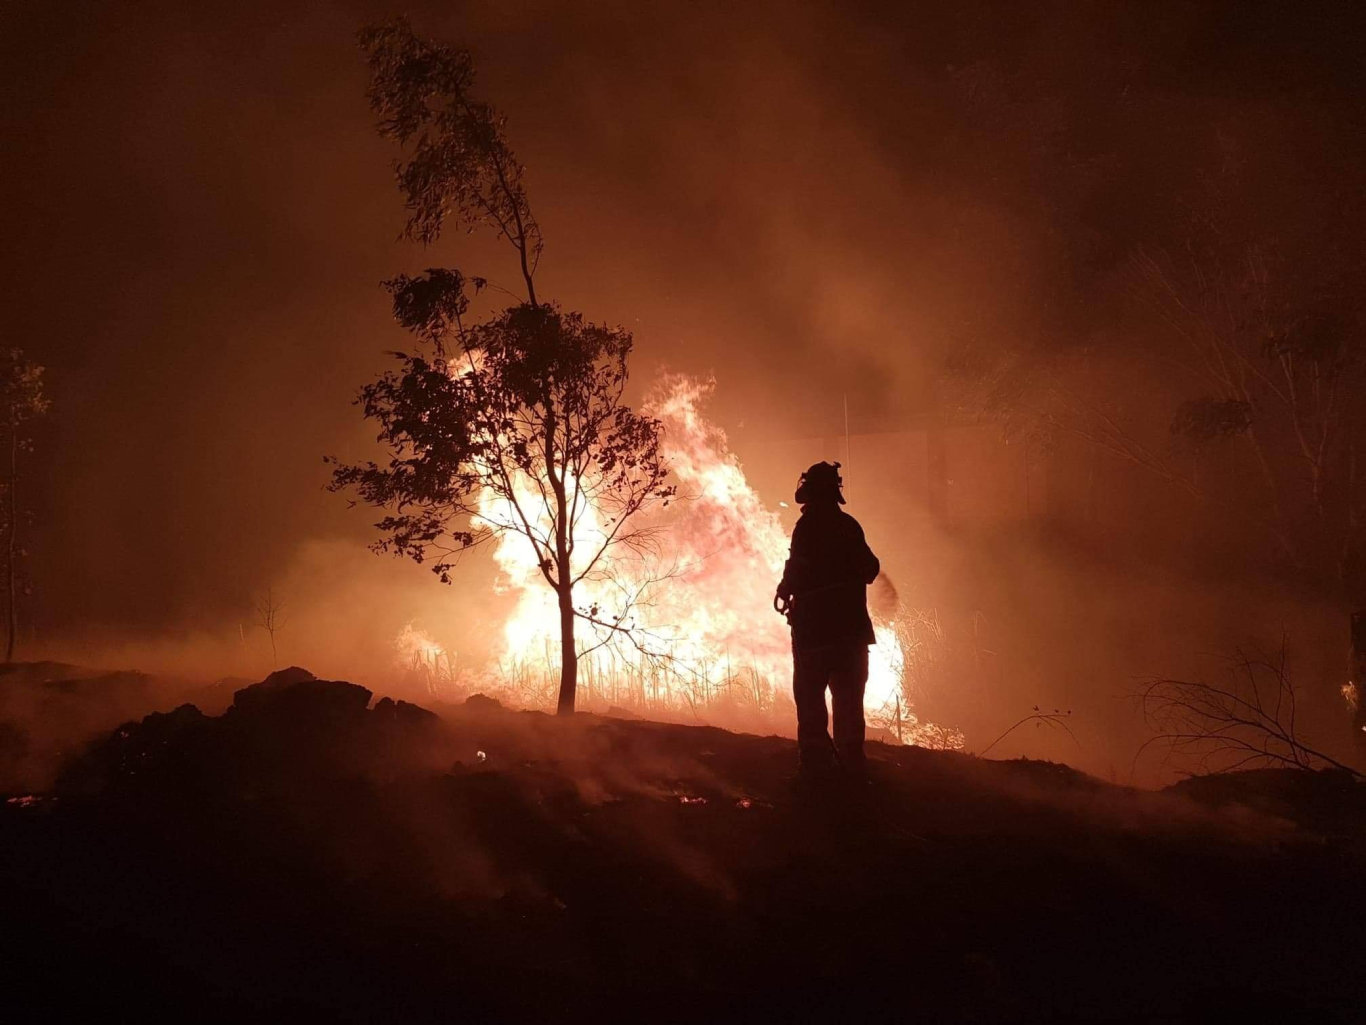 The Cambooya Rural Fire Service shared these images of the Stanthorpe Fire.